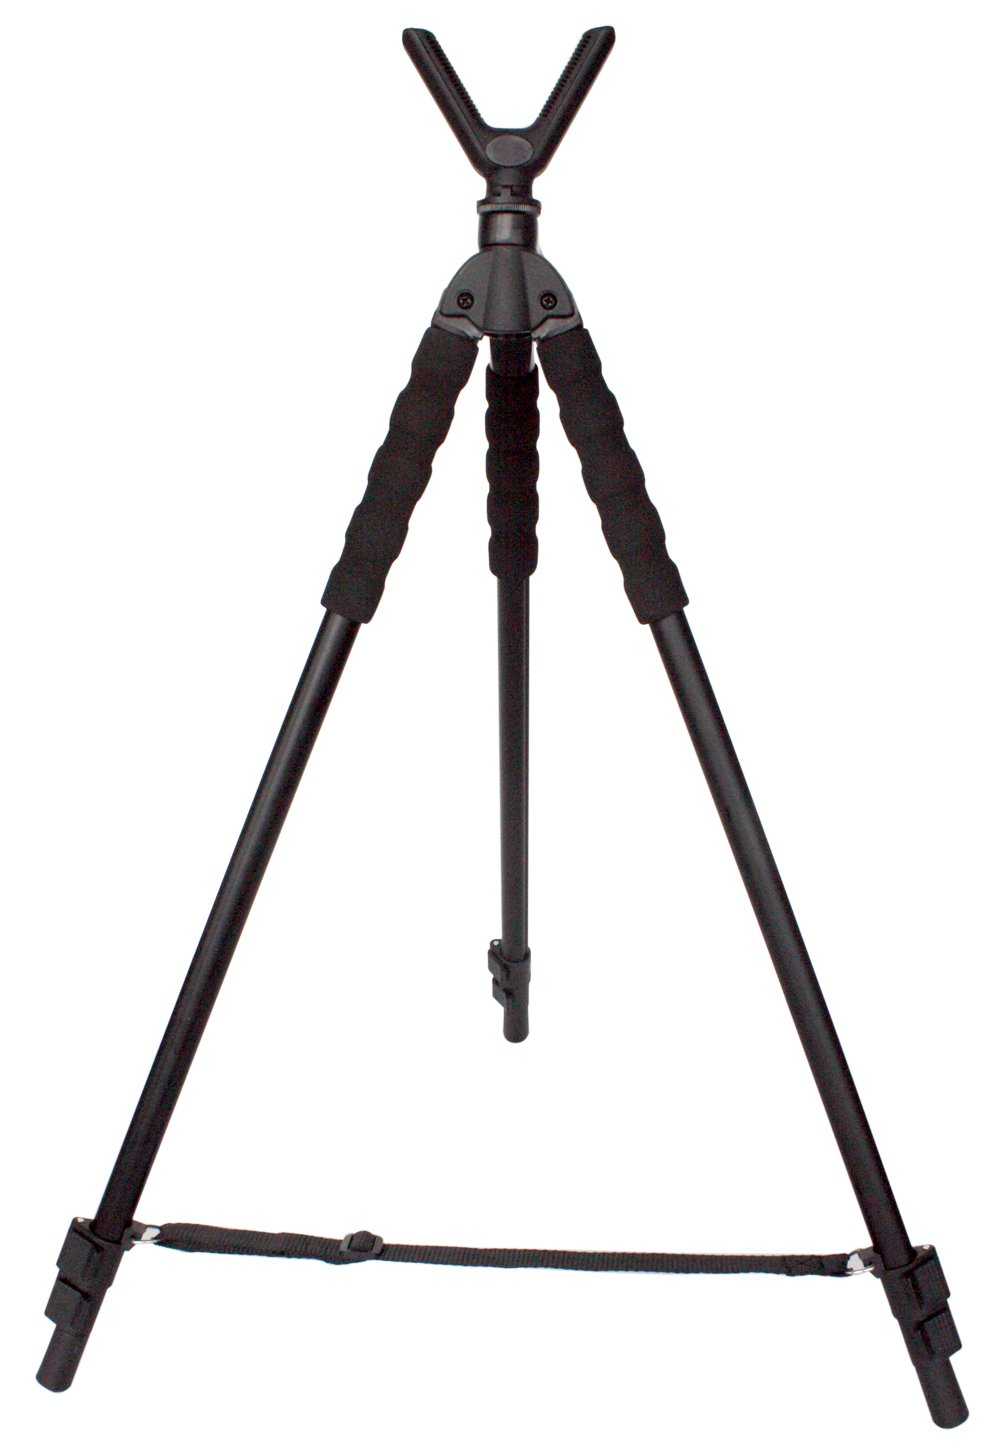 Leader Accessories Lightweight Aluminum Alloy Shooting Stick Tripod Height Adjustable, 19.5'' - 63'' by Leader Accessories